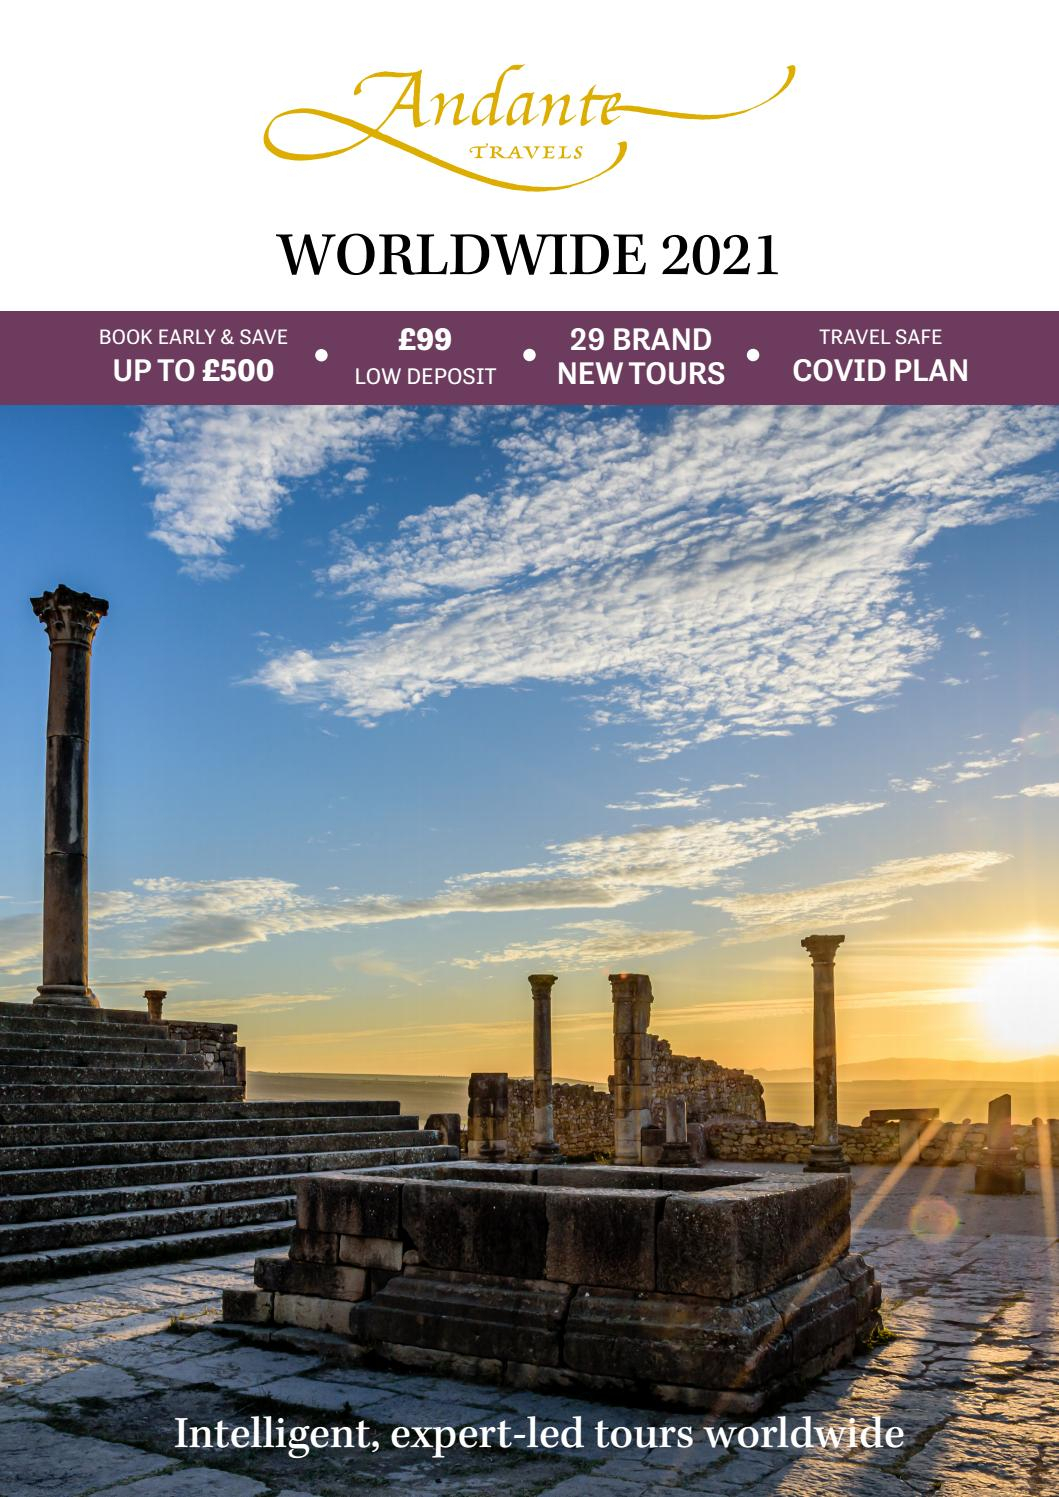 Andante Travels - 2021 Worldwide 1St Edition Brochure with Prehistoric Pocket Calendar 2021 With